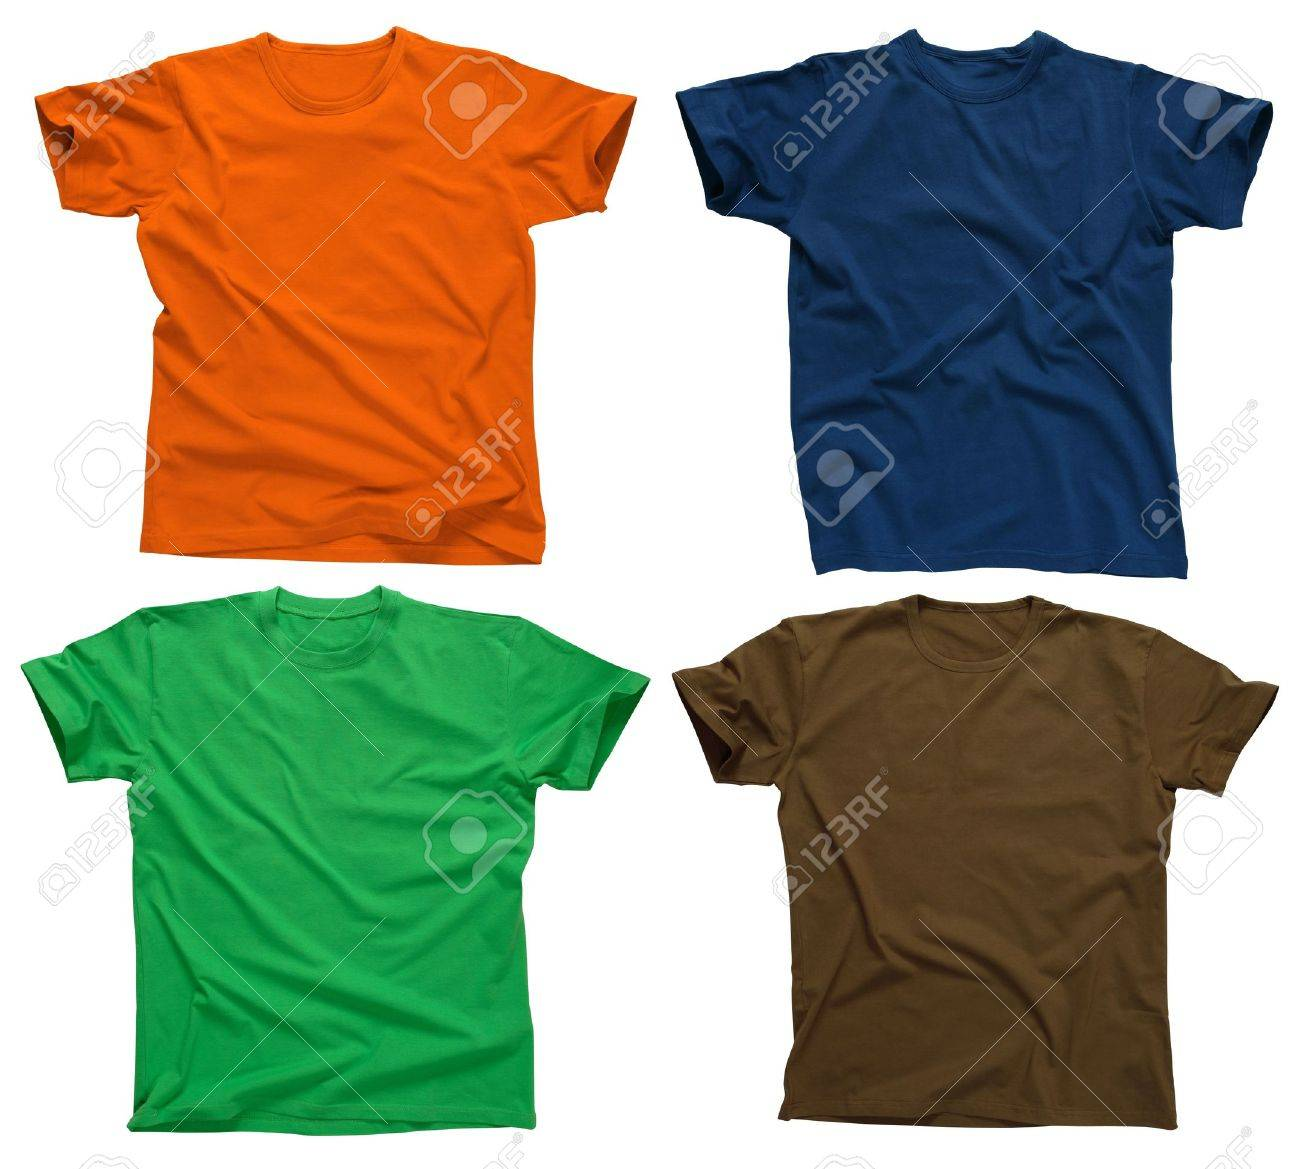 Photograph of four blank t-shirts, green, dark blue, brown, and orange.  Clipping path included.  Ready for your design or logo. Stock Photo - 2625508